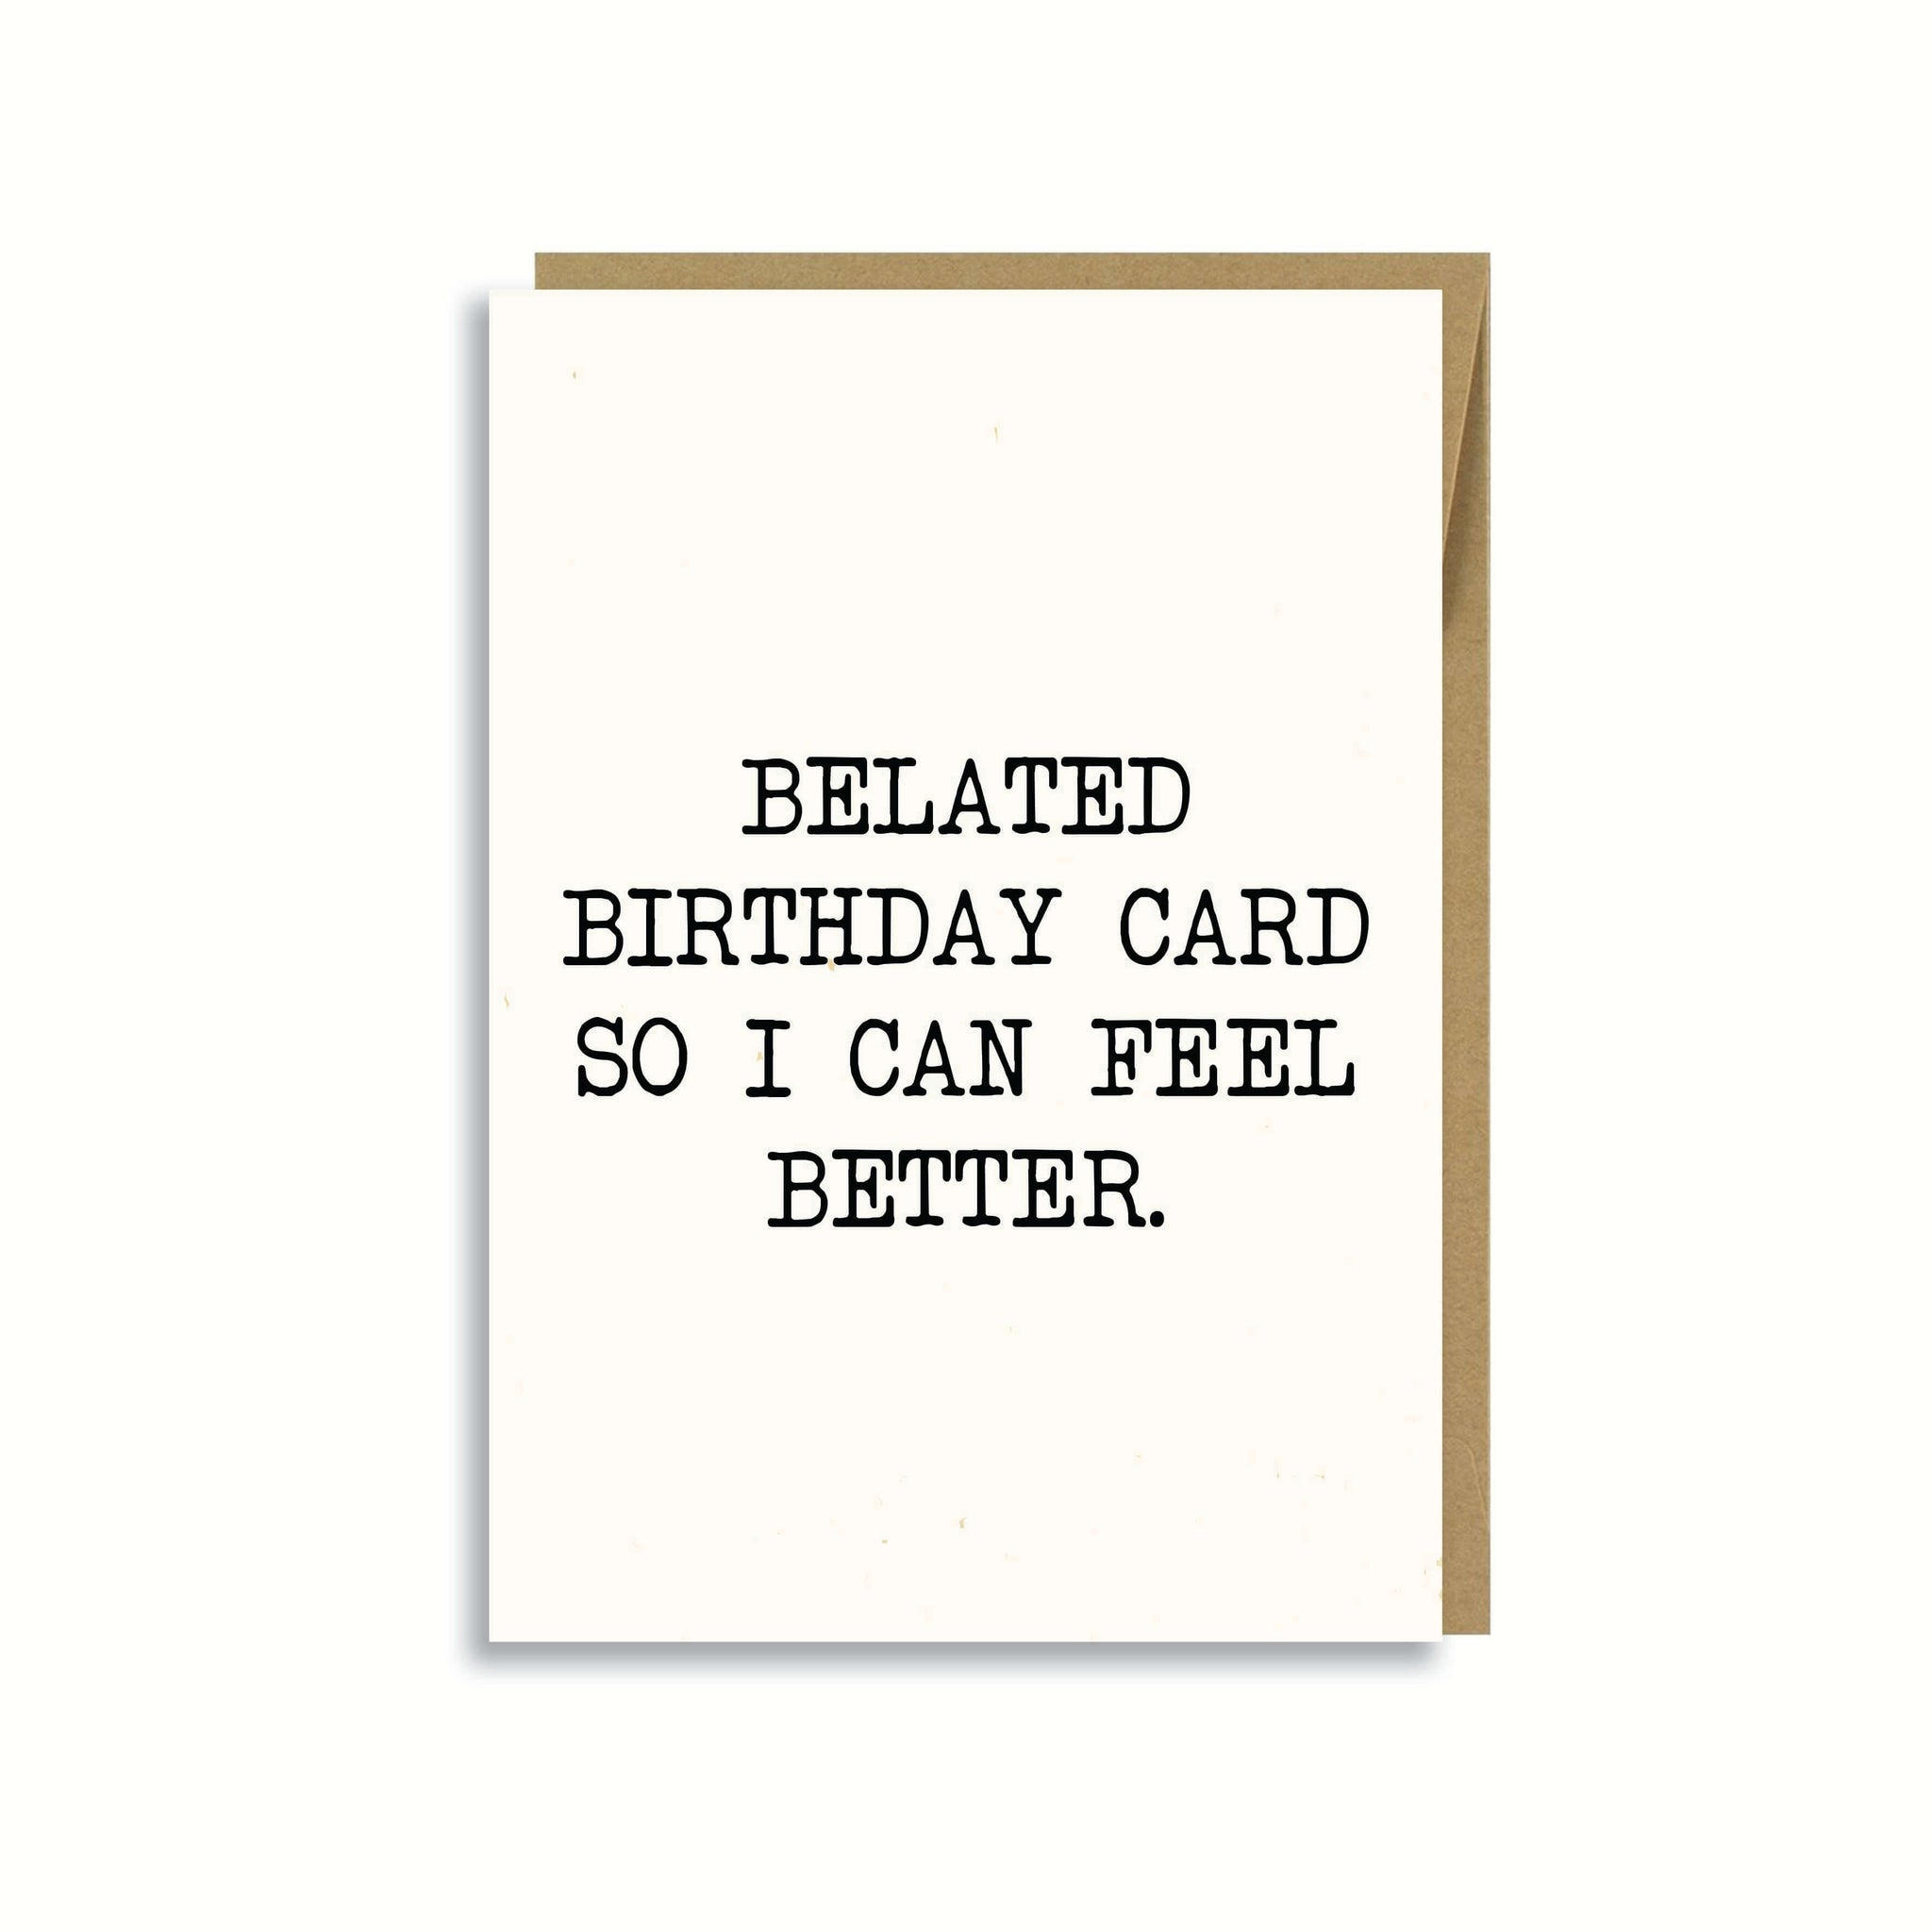 BELATED BIRTHDAY CARD SO I CAN FEEL BETTER